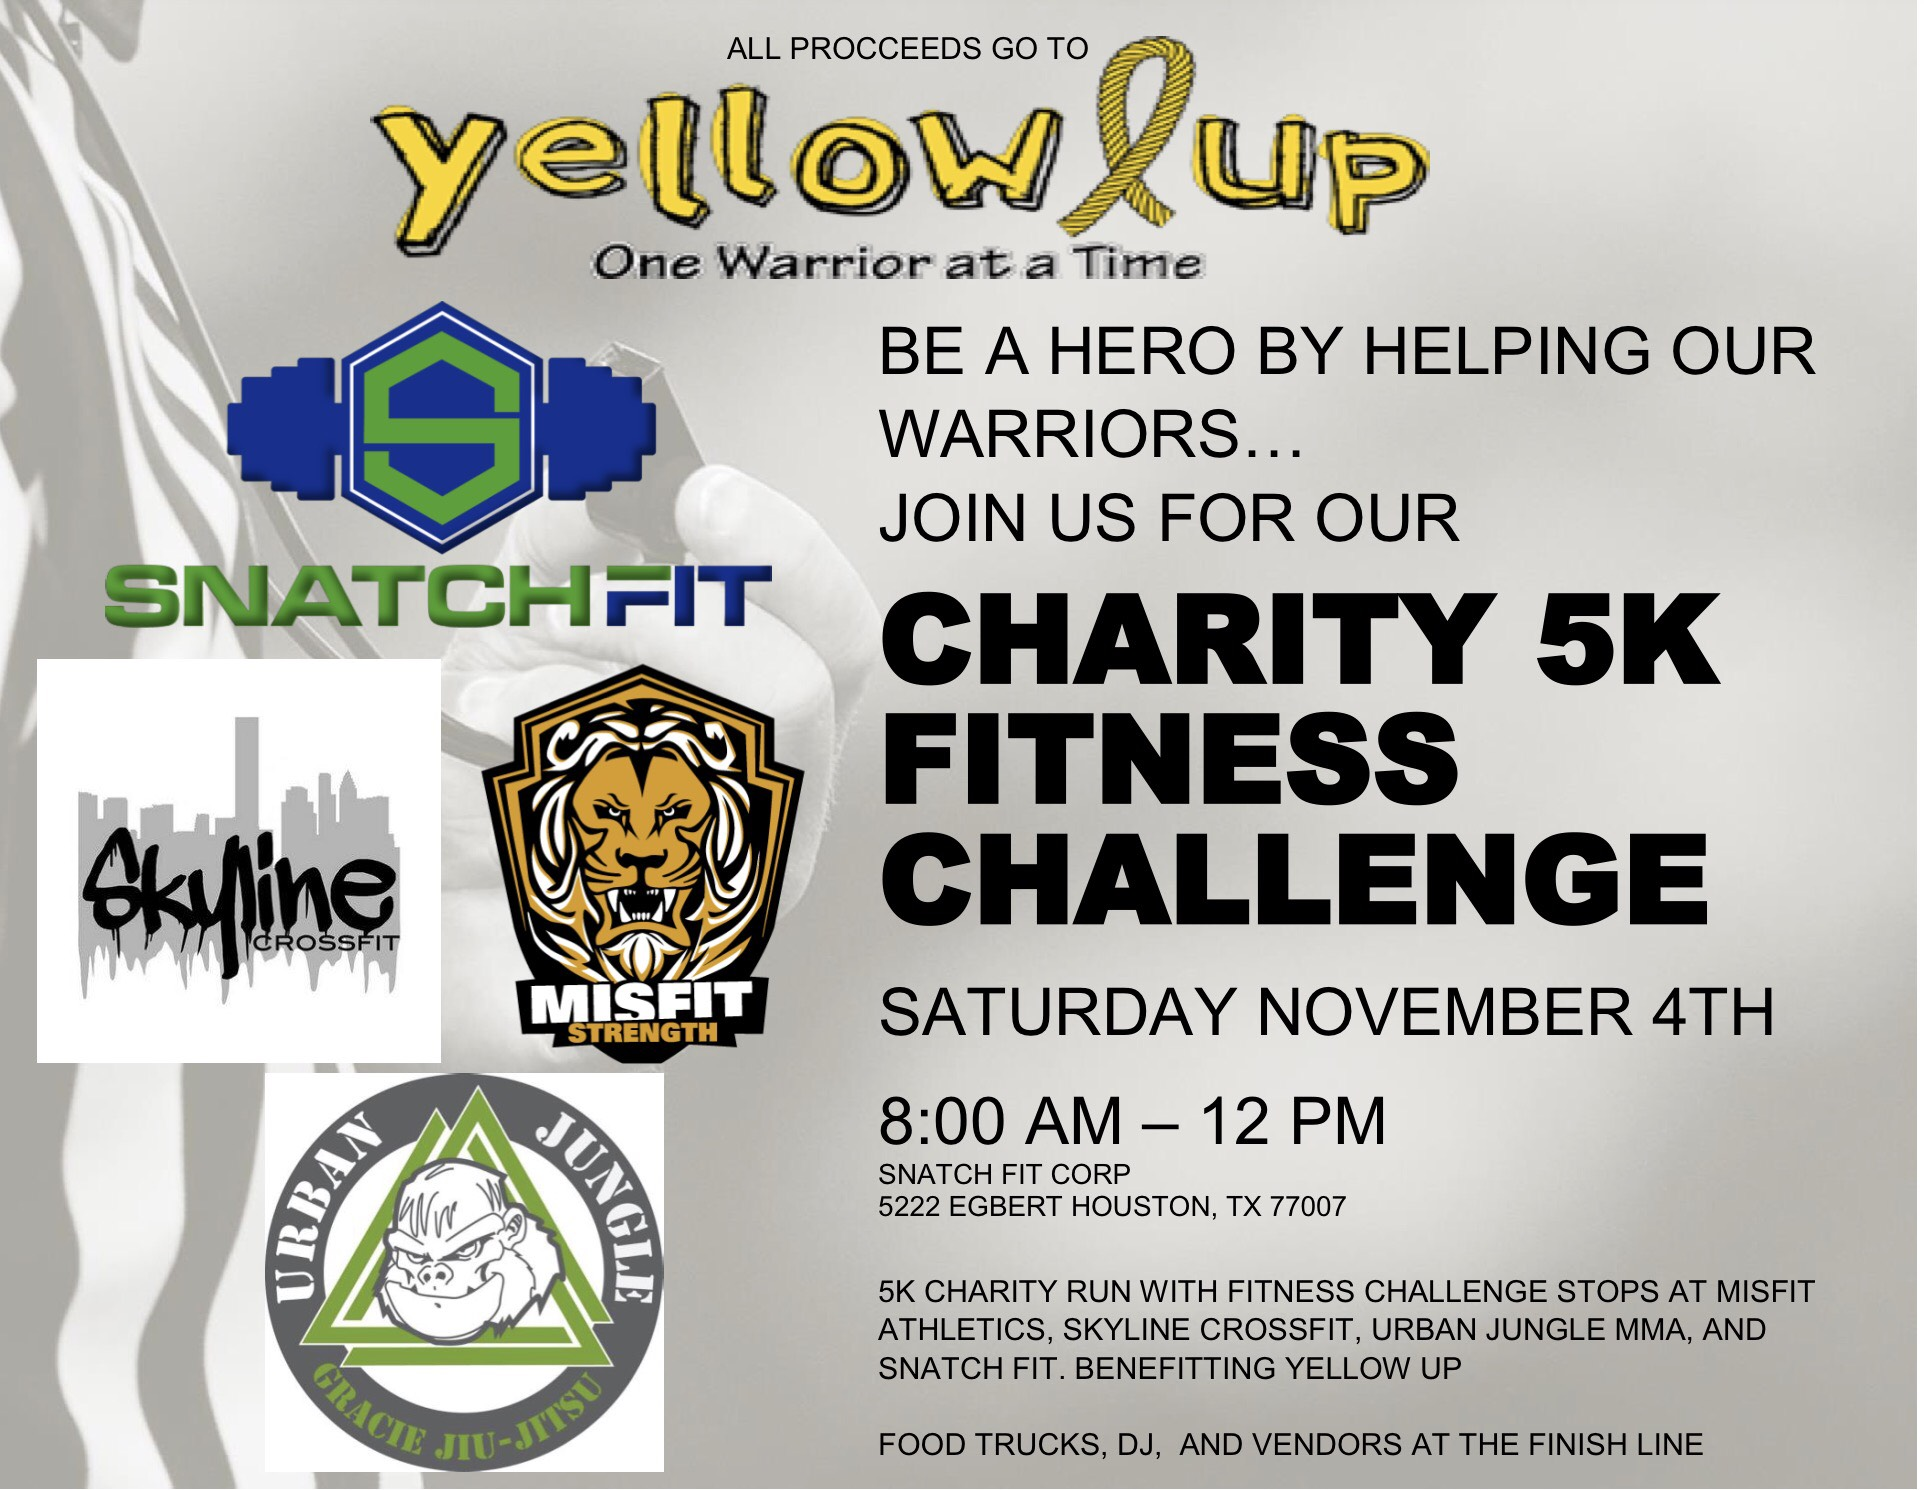 Snatch Fit of Houston is excited to bring to you a one-of-a-kind family fun run event to celebrate our one-year anniversary.  A portion of the proceeds will be donated to Yellow Up. Yellow up provides gift packages, care packages, meal, and social outings to young warriors battling cancer. www.yellowup.org . let's get fit while making an impact!  What makes our run different!? This 3.2-mile run will feature fitness stations with fun workouts lead by our neighbor gyms in the Heights fitness community . We excited to be partnered with some of the top fitness experiences in Houston which will be providing the following workouts.  Skyline Crossfit- Crossfit Work out of the day  Urban Jungle Martial Arts- Kickboxing Conditioning  Misfit Strength and Conditioning- High intensity Resistance Training  With workouts like these you will never see fitness the same again. Experience all realms of exercise in one run.  - The event starts at 8:00am and ends at 12:00pm.  - We will have food trucks, medals for participants, and beer to celebrate the journey  - The event is family friendly and open to the public.  Registrants will receive a free medal and beer and if you have over 15 or more people on your business list during the registration process; you will receive free space at the event to promote your business.  Be part of the fitness experience that is unlike any before it!